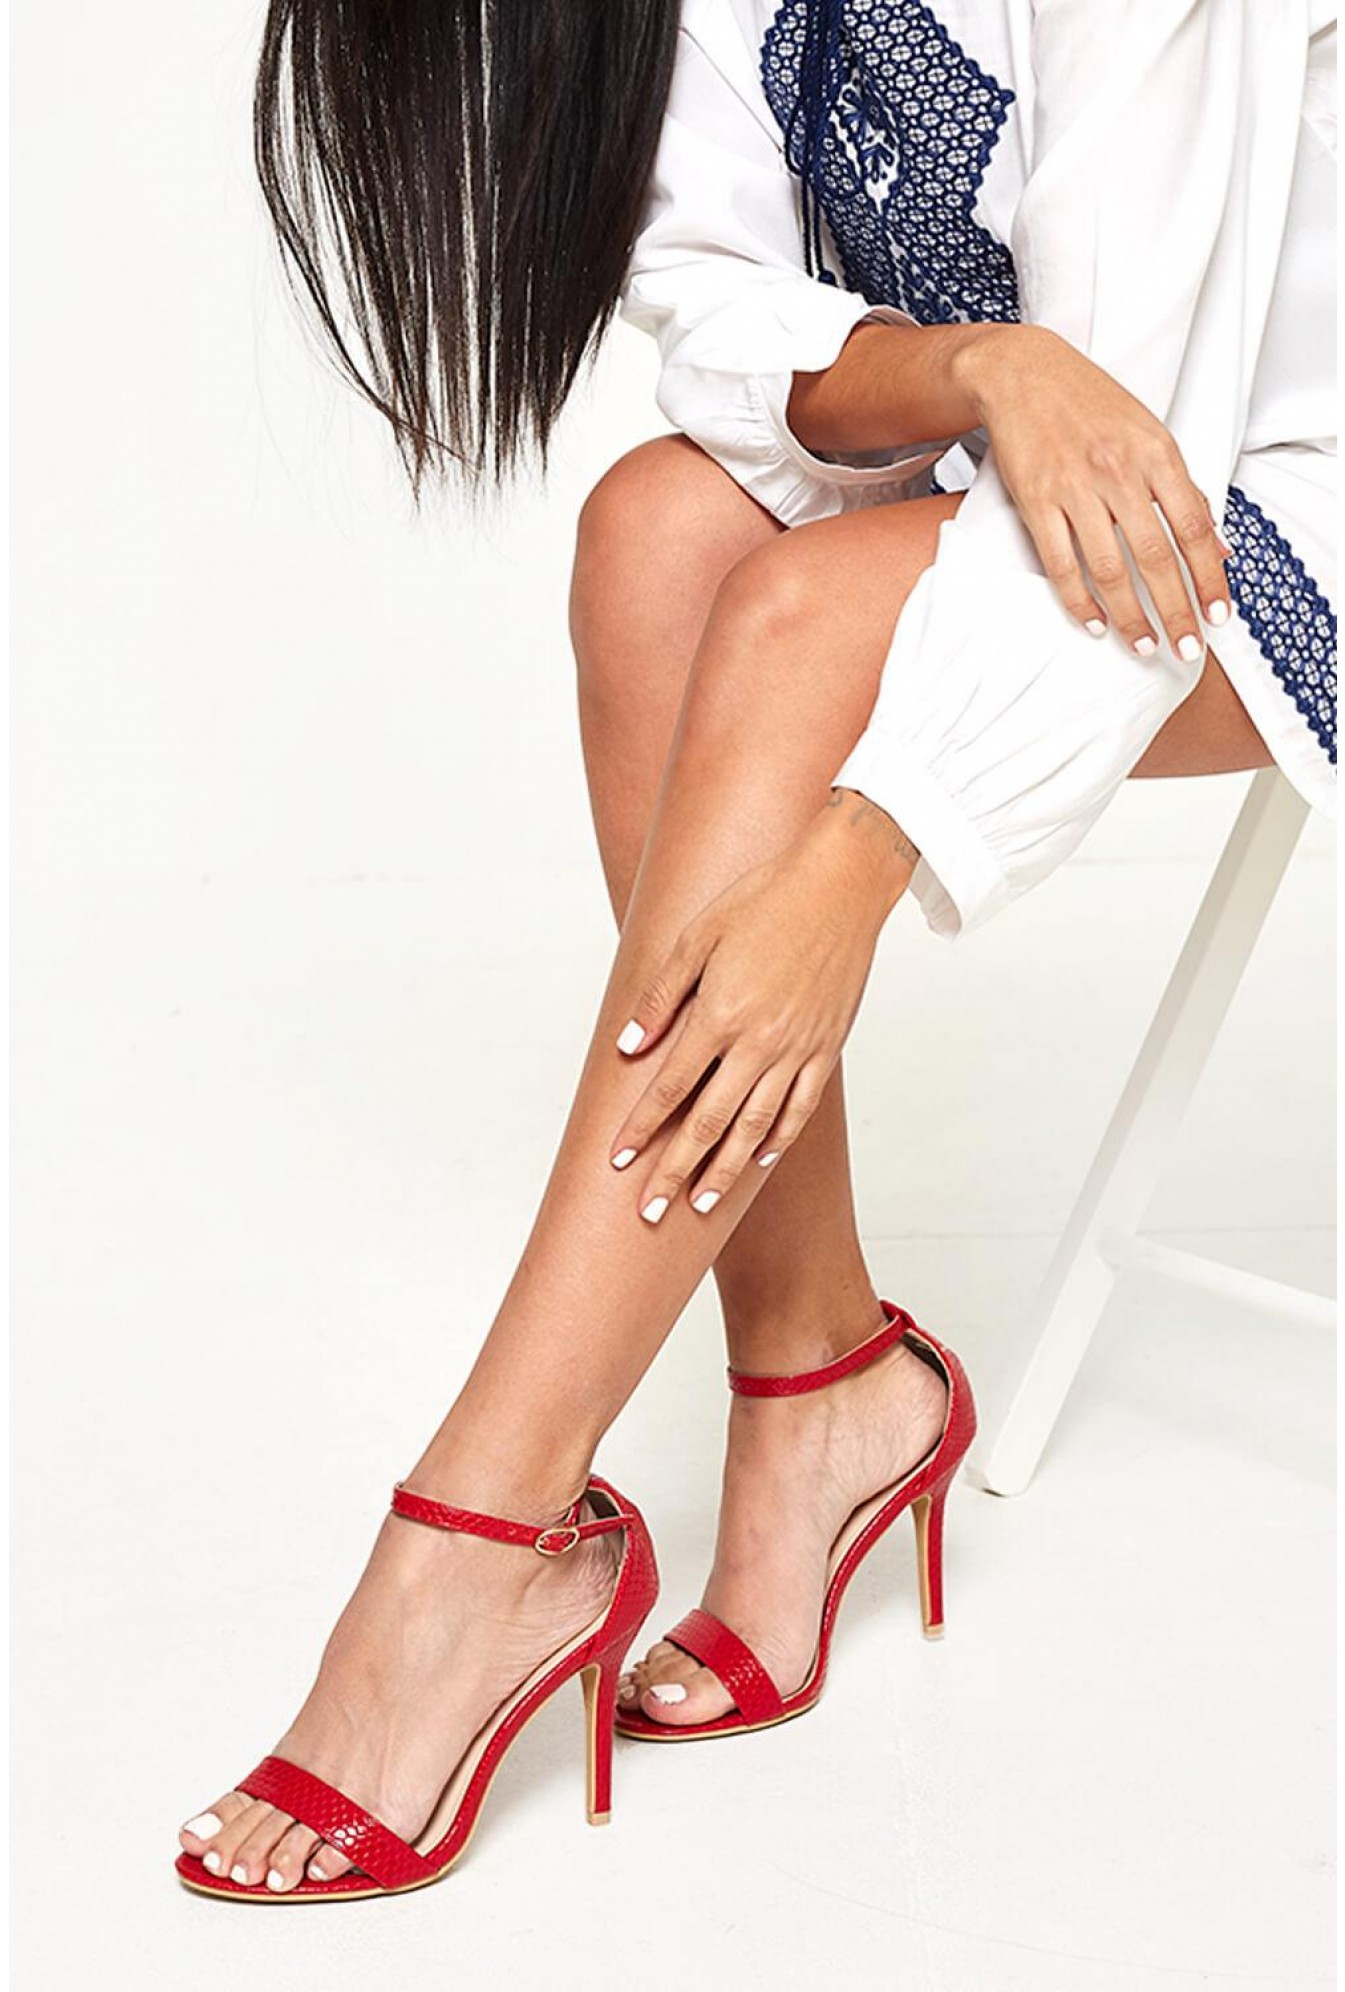 d5013811a29 Acantha Barely There Heeled Sandals in Red Snake